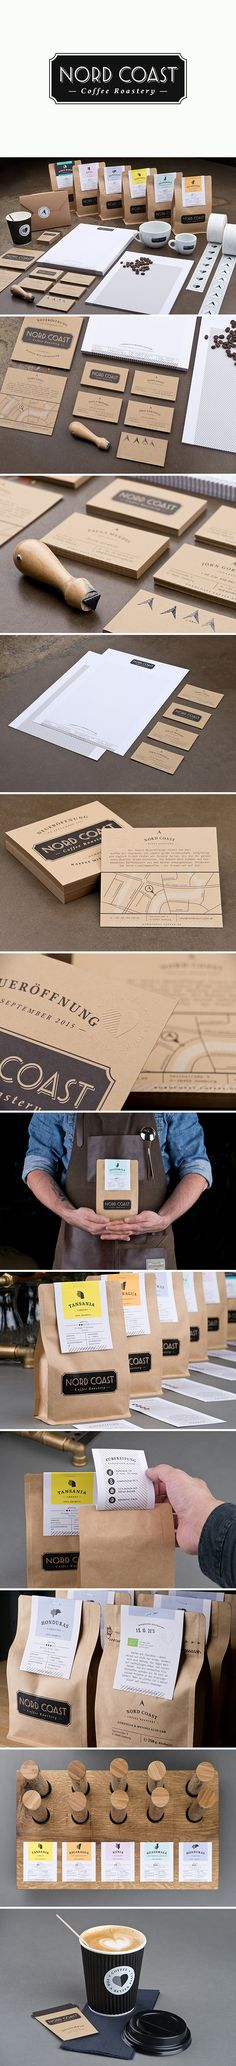 Nord Coast Coffee Roastery by Phound Design Studio Coffee Logo, Coffee Branding, Coffee Packaging, Coffee Shop, Organic Packaging, Brand Packaging, Packaging Design, Branding Design, Menu Design